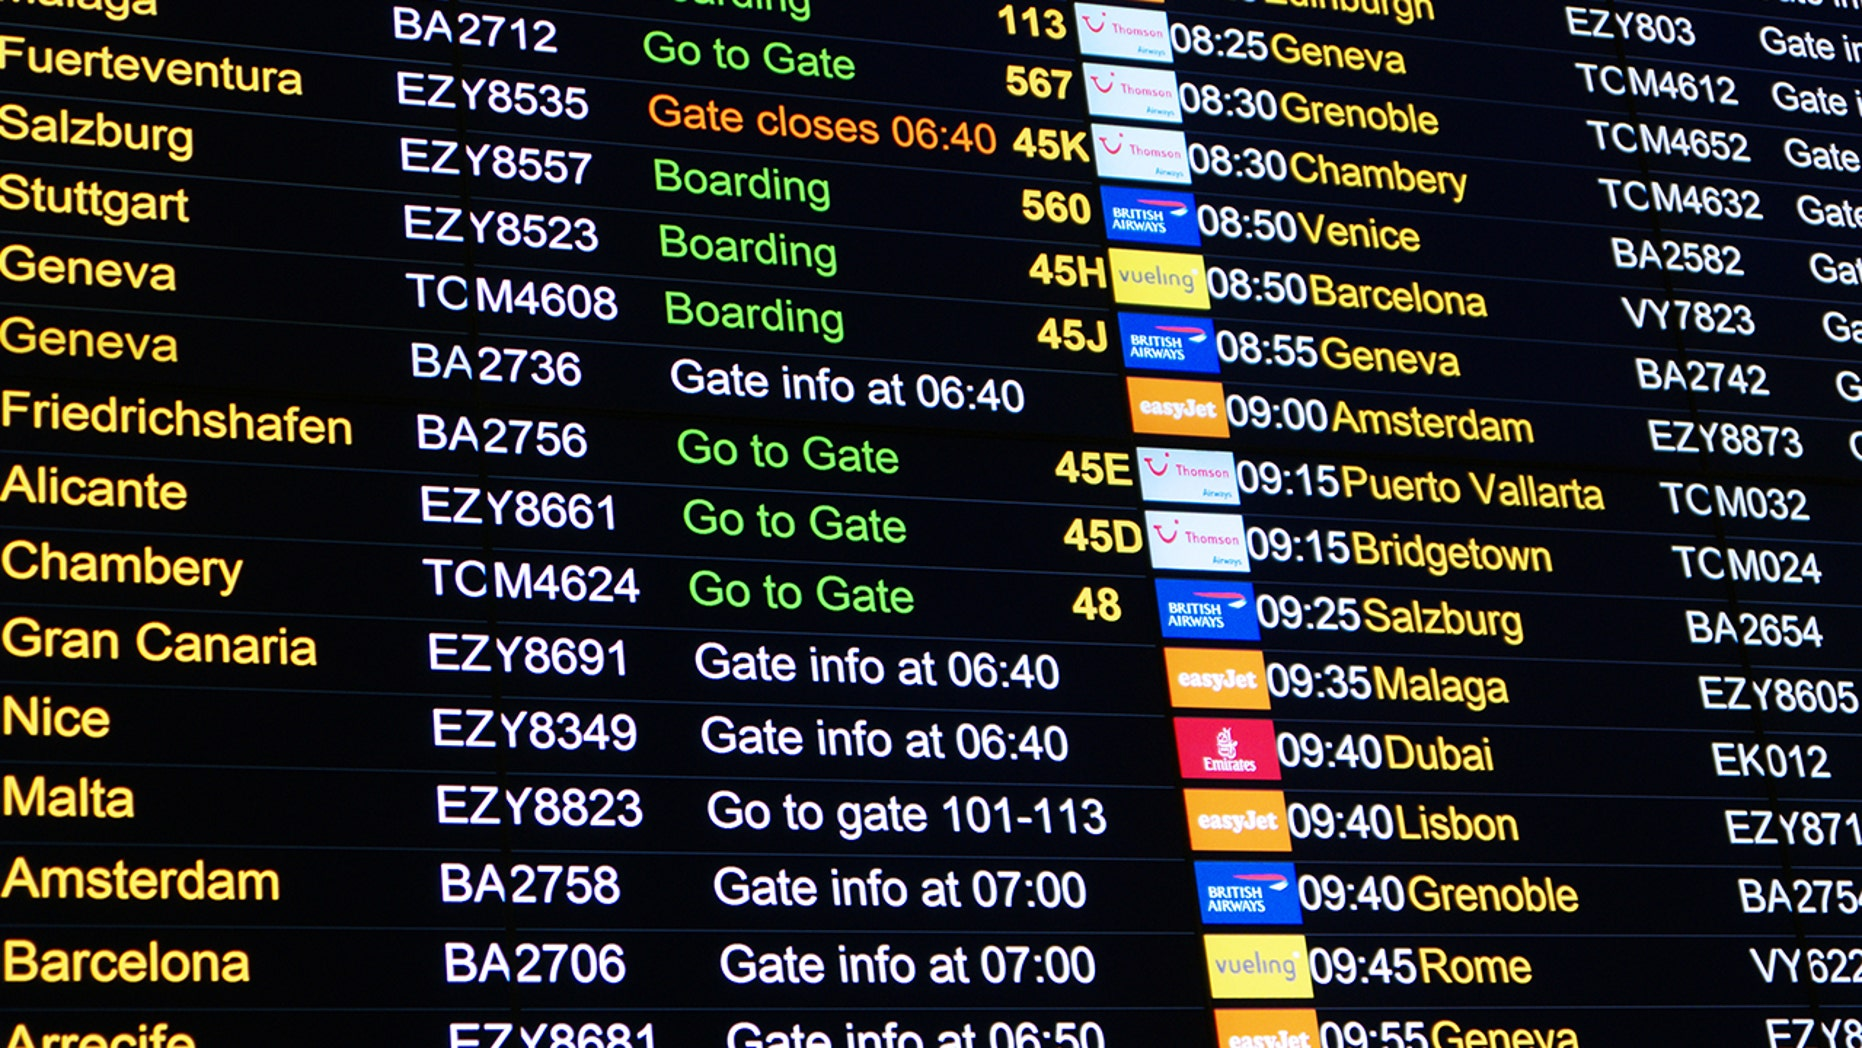 A technical difficulty at Gatwick Airport that rendered the display screens useless forced employees to write flight information on whiteboards.